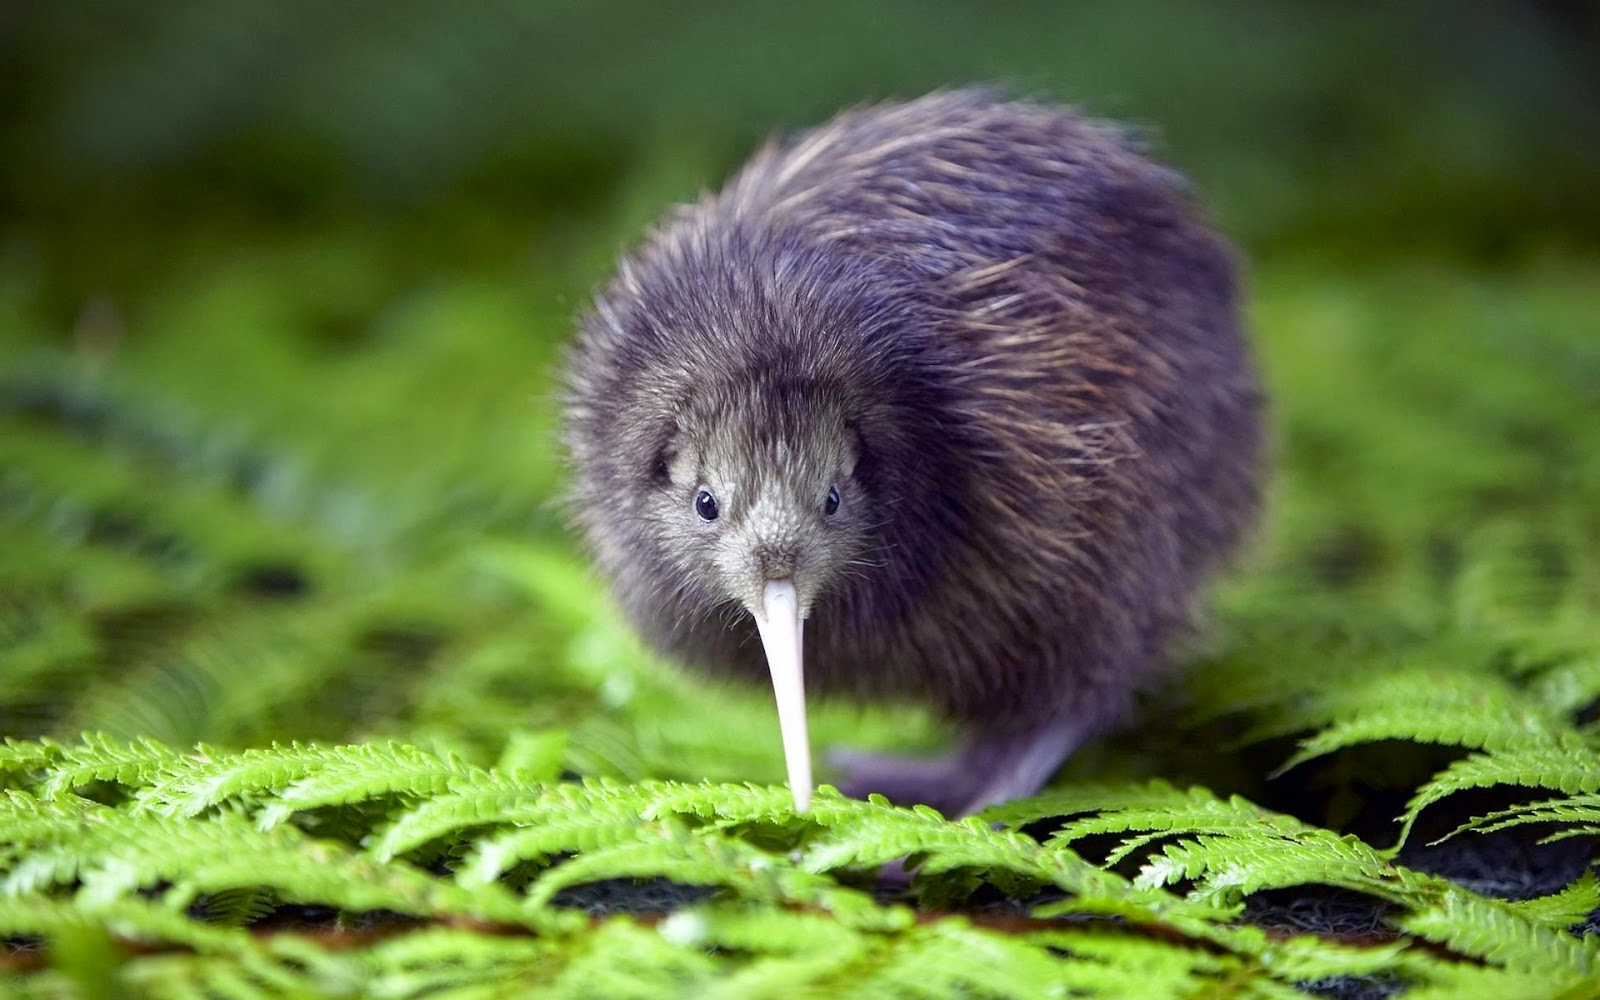 Kiwi bird is the only wingless bird in the world